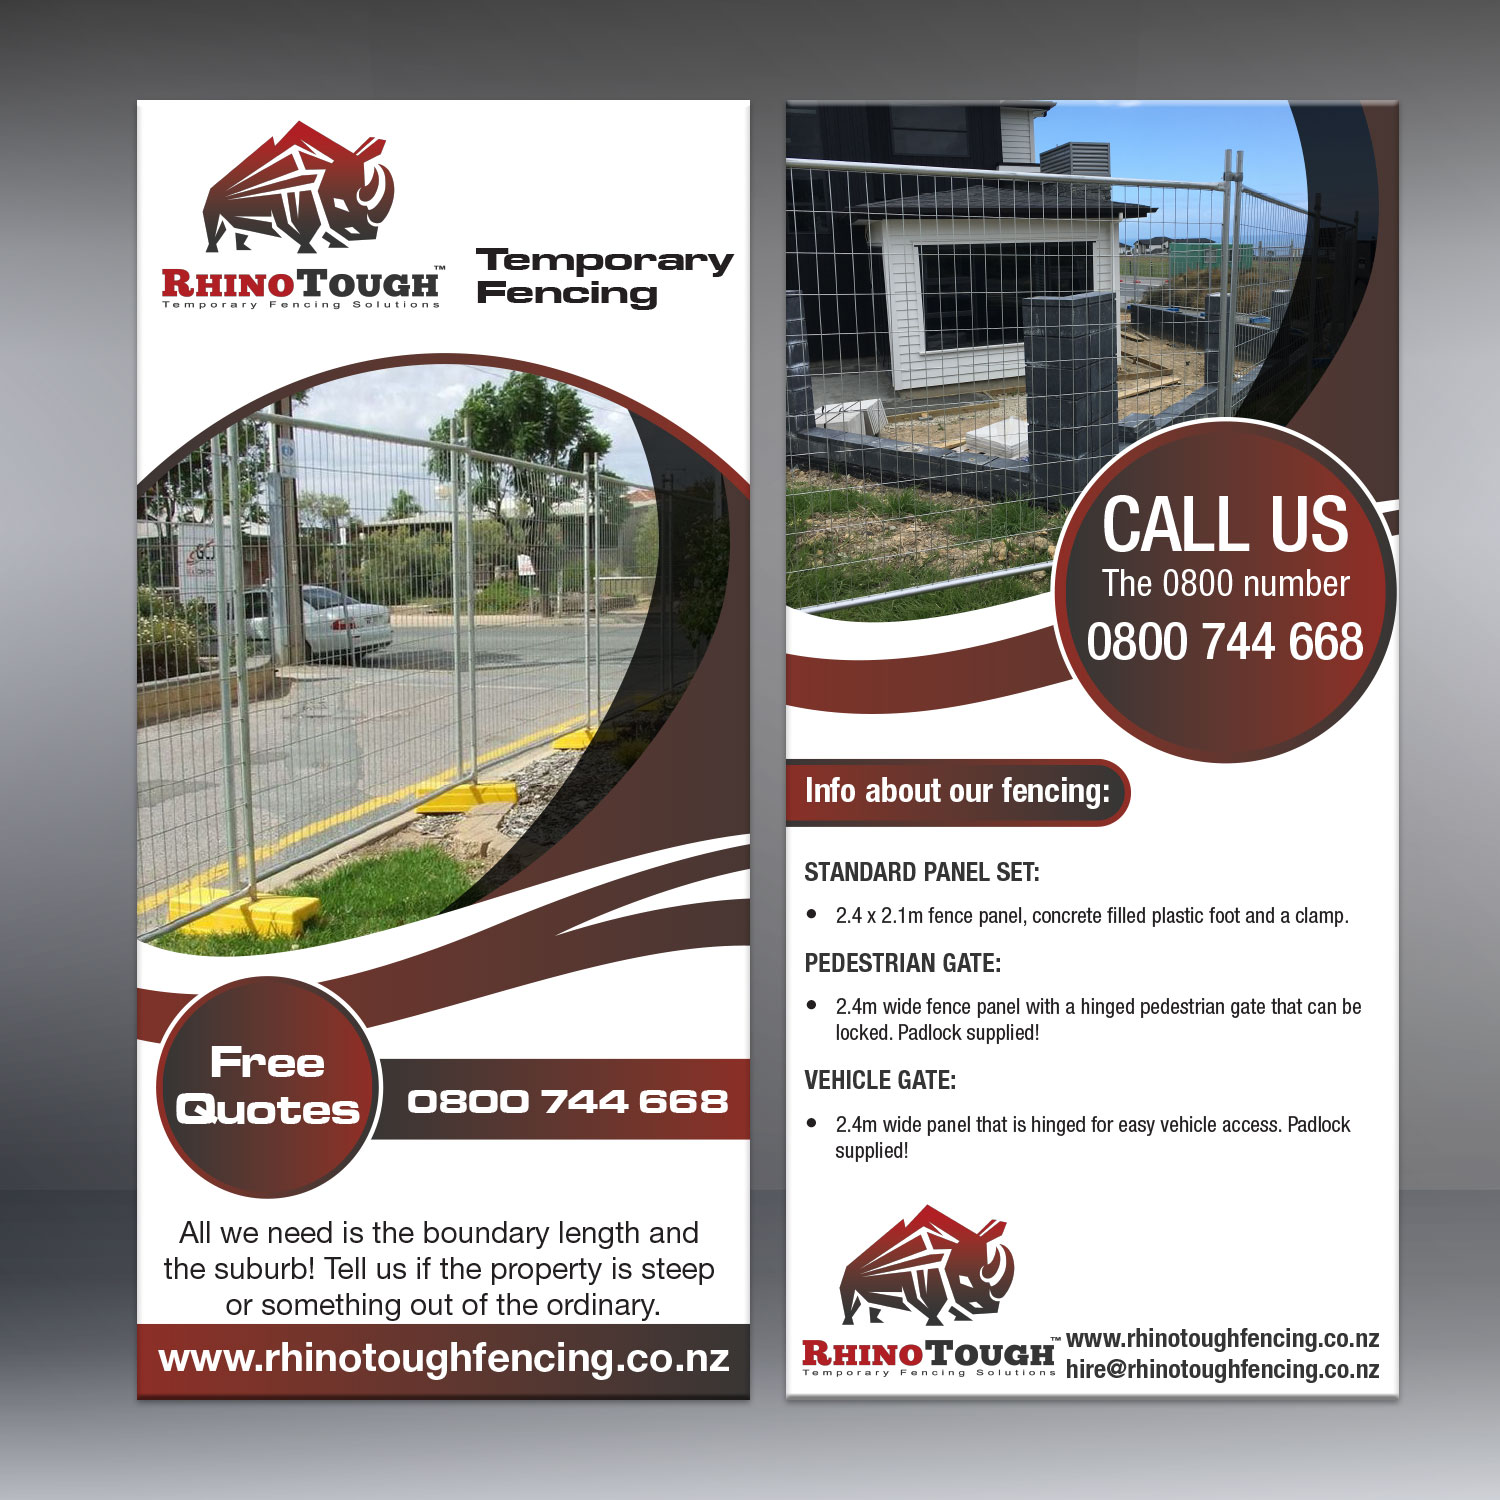 Professional Upmarket Fencing Flyer Design For A Company